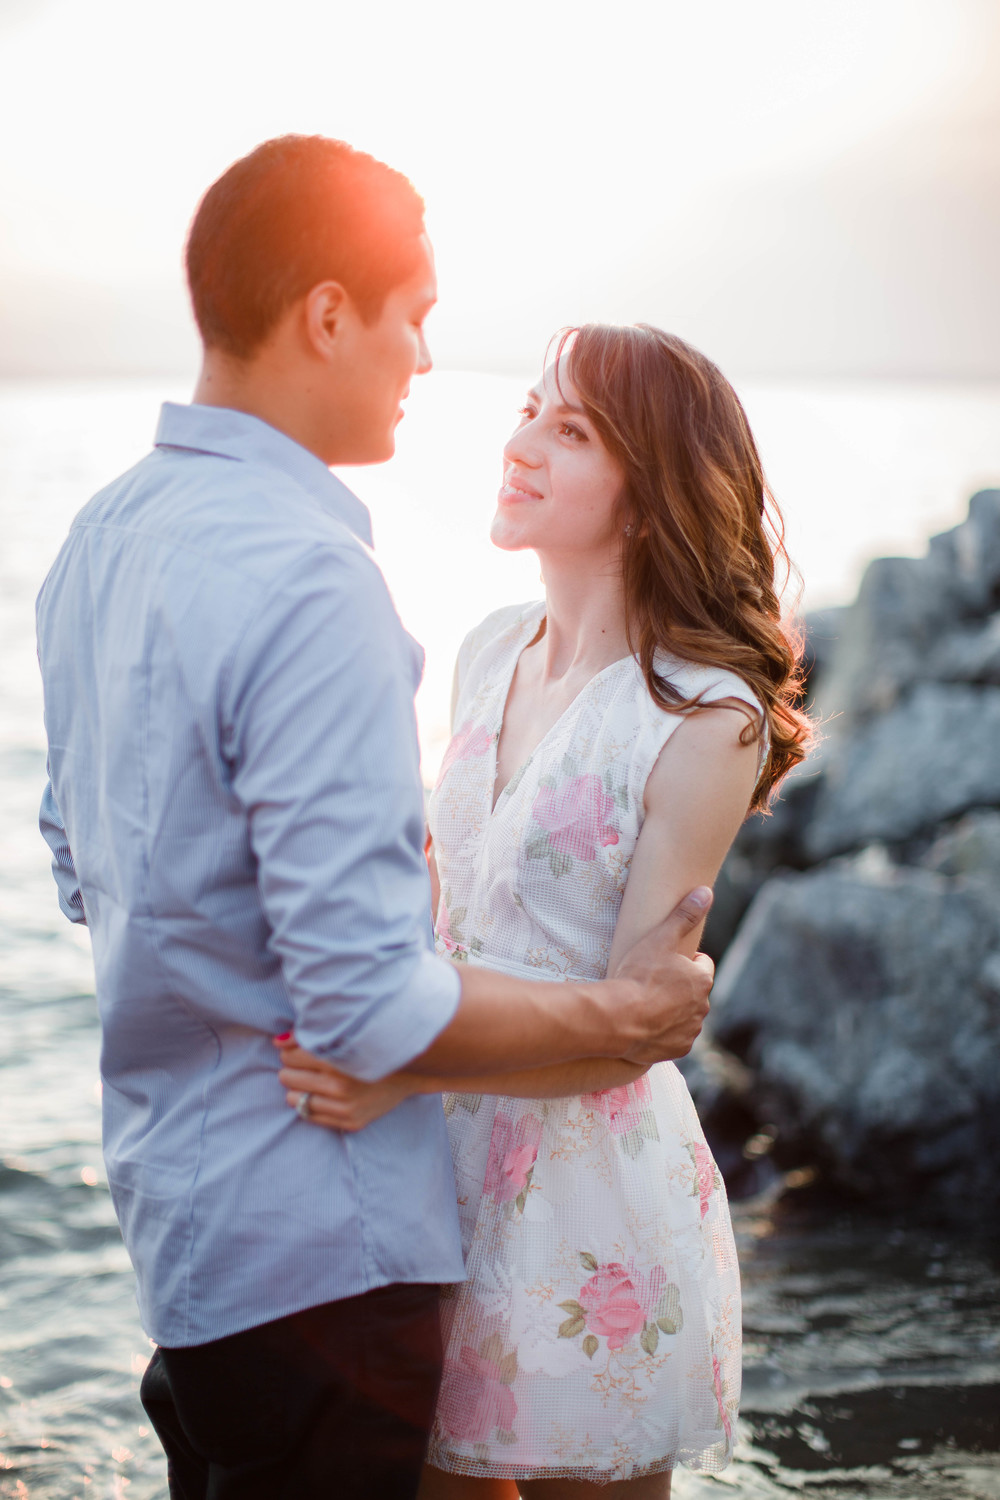 Cruz+Robert ©2015AdinaPrestonPhotography-Seattle+Photographer+Engagement-Weddings-33.jpg